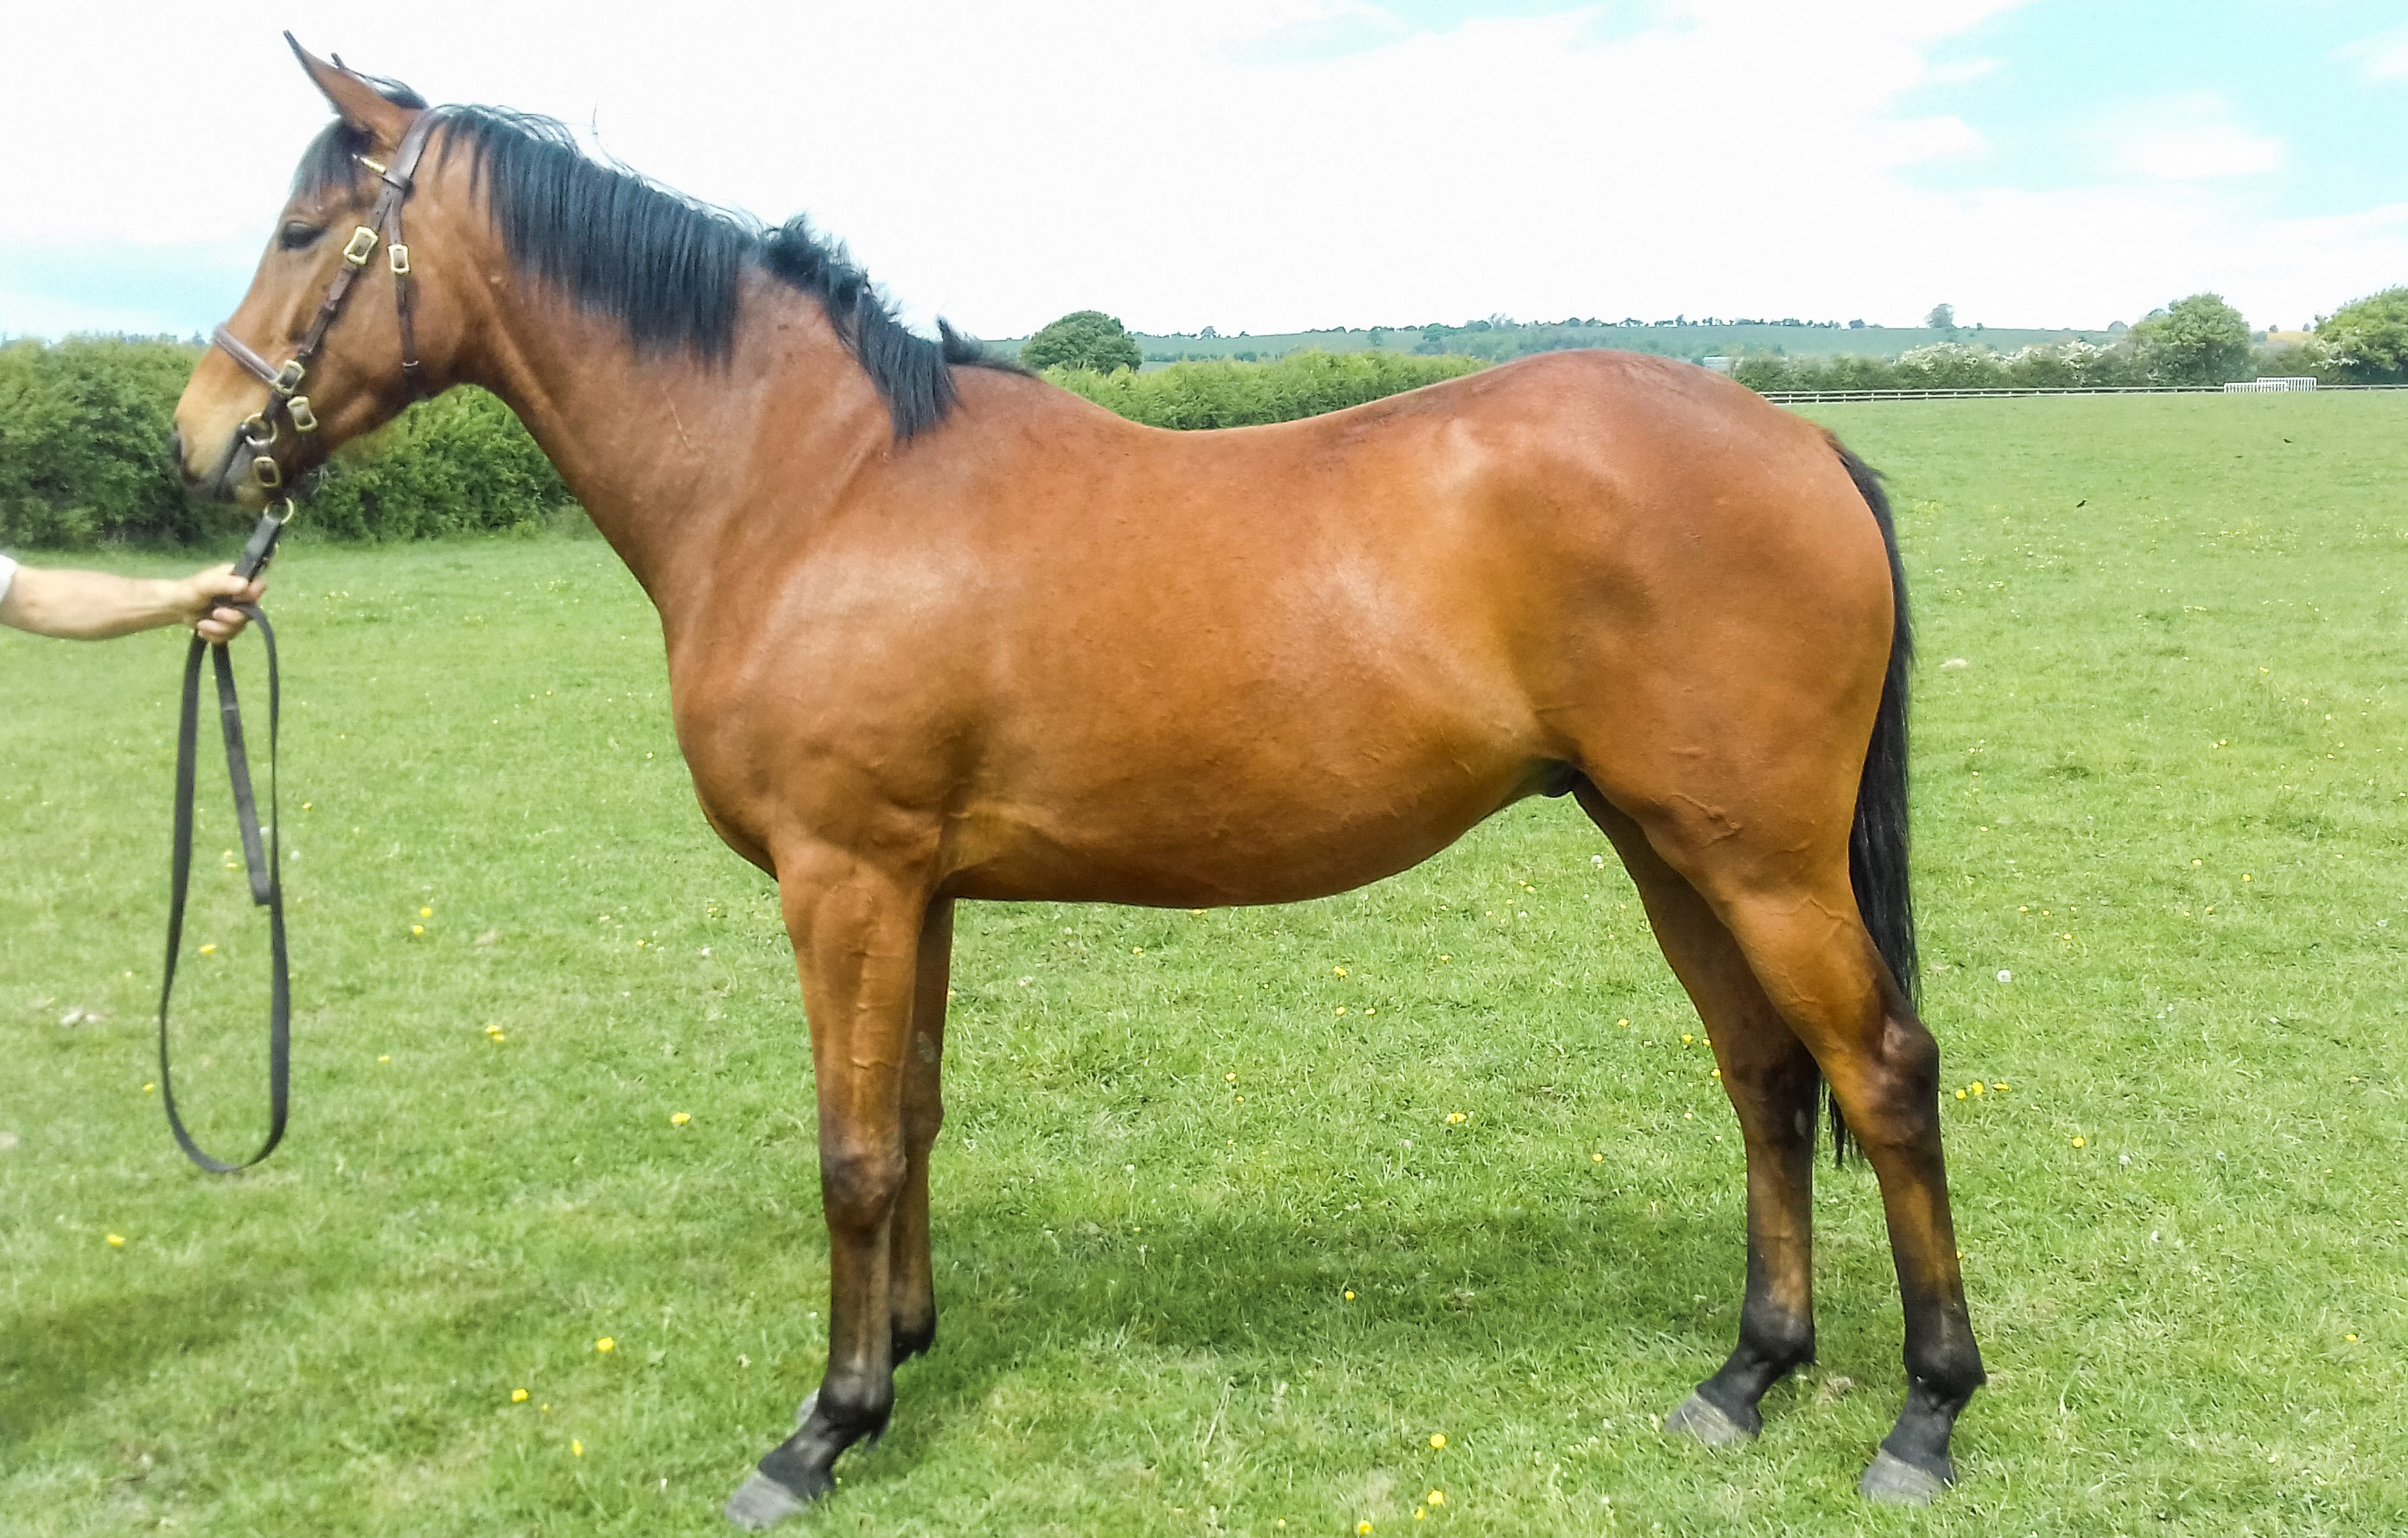 3YR OLD GELDING BY SHOLOKHOV OUT OF PUTLANDS BRIDGE